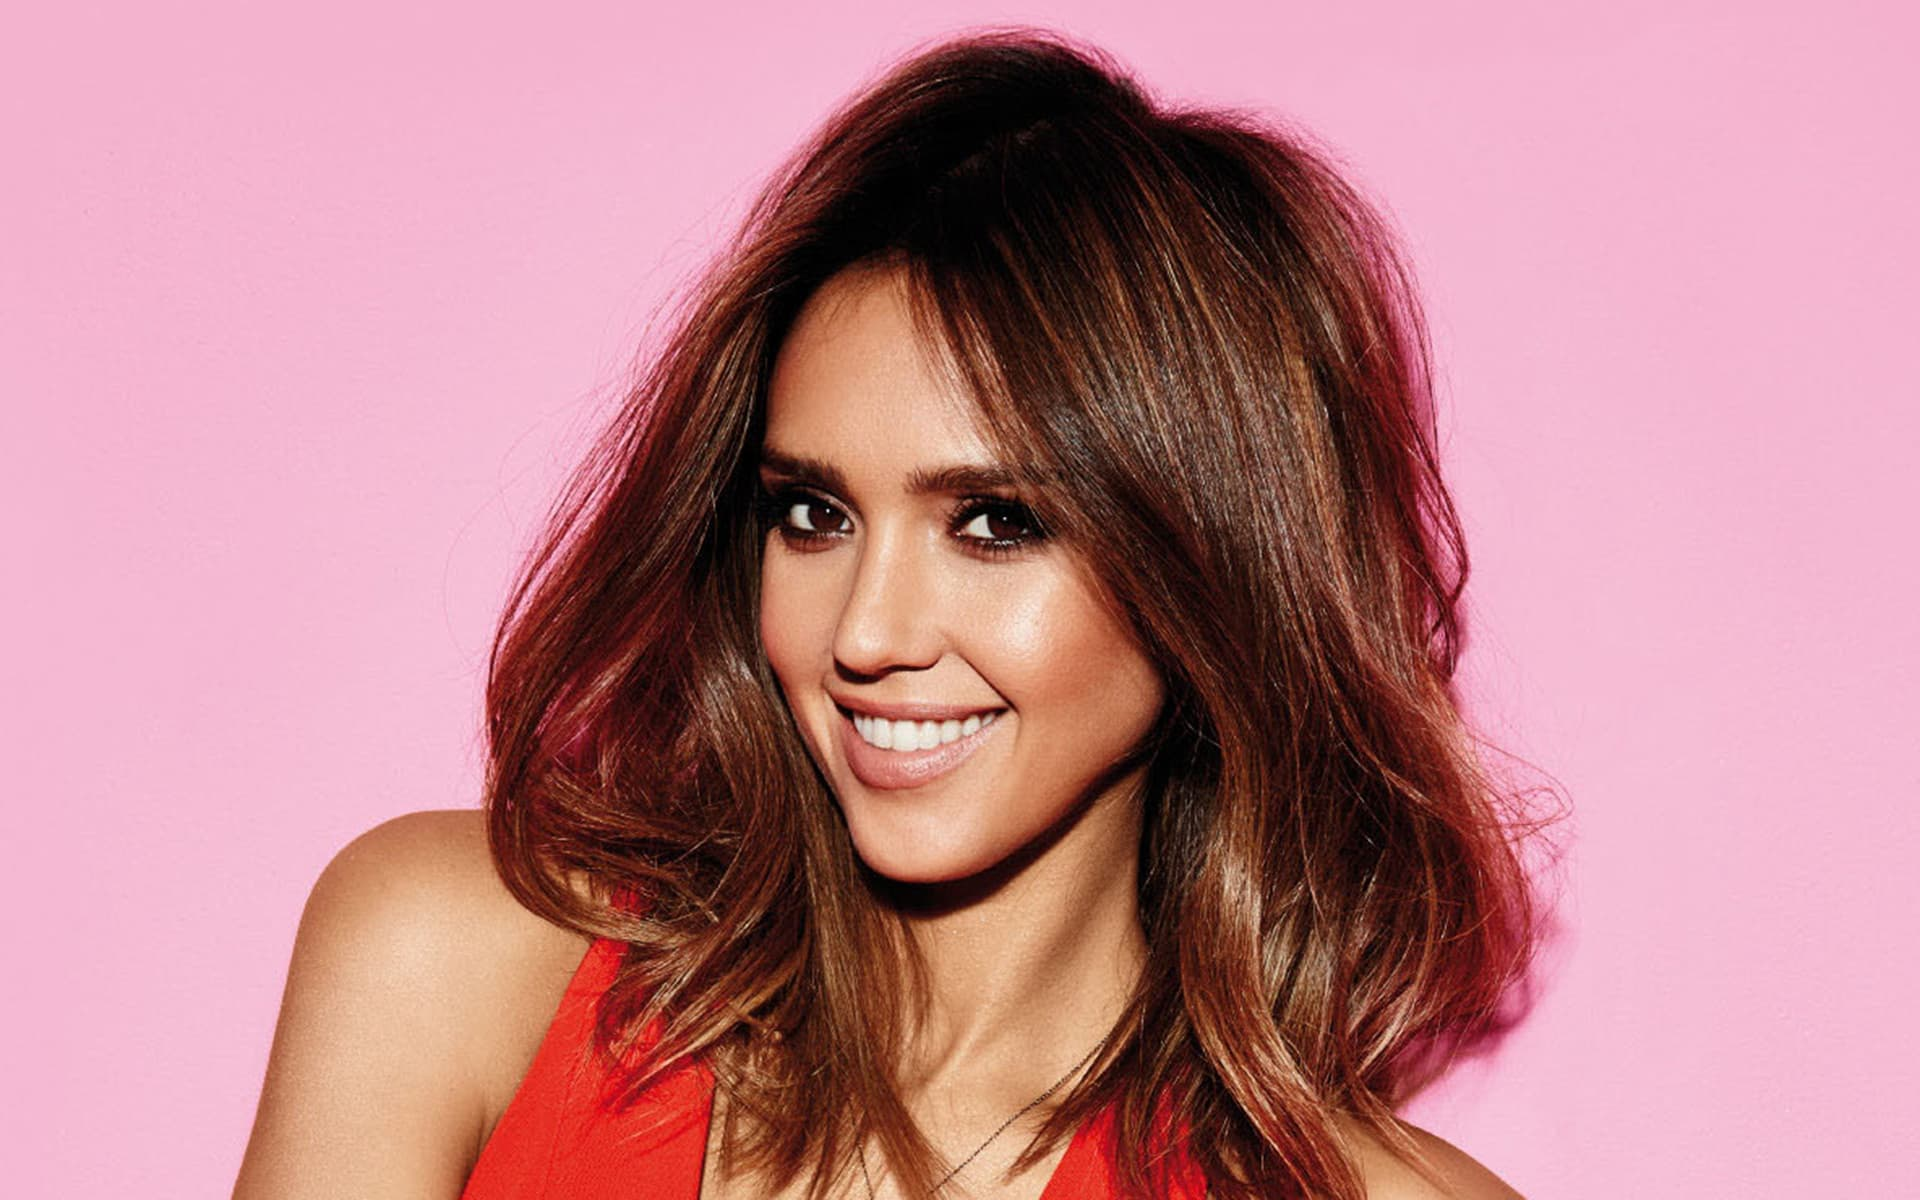 Jessica Alba smile Desktop wallpapers pink background